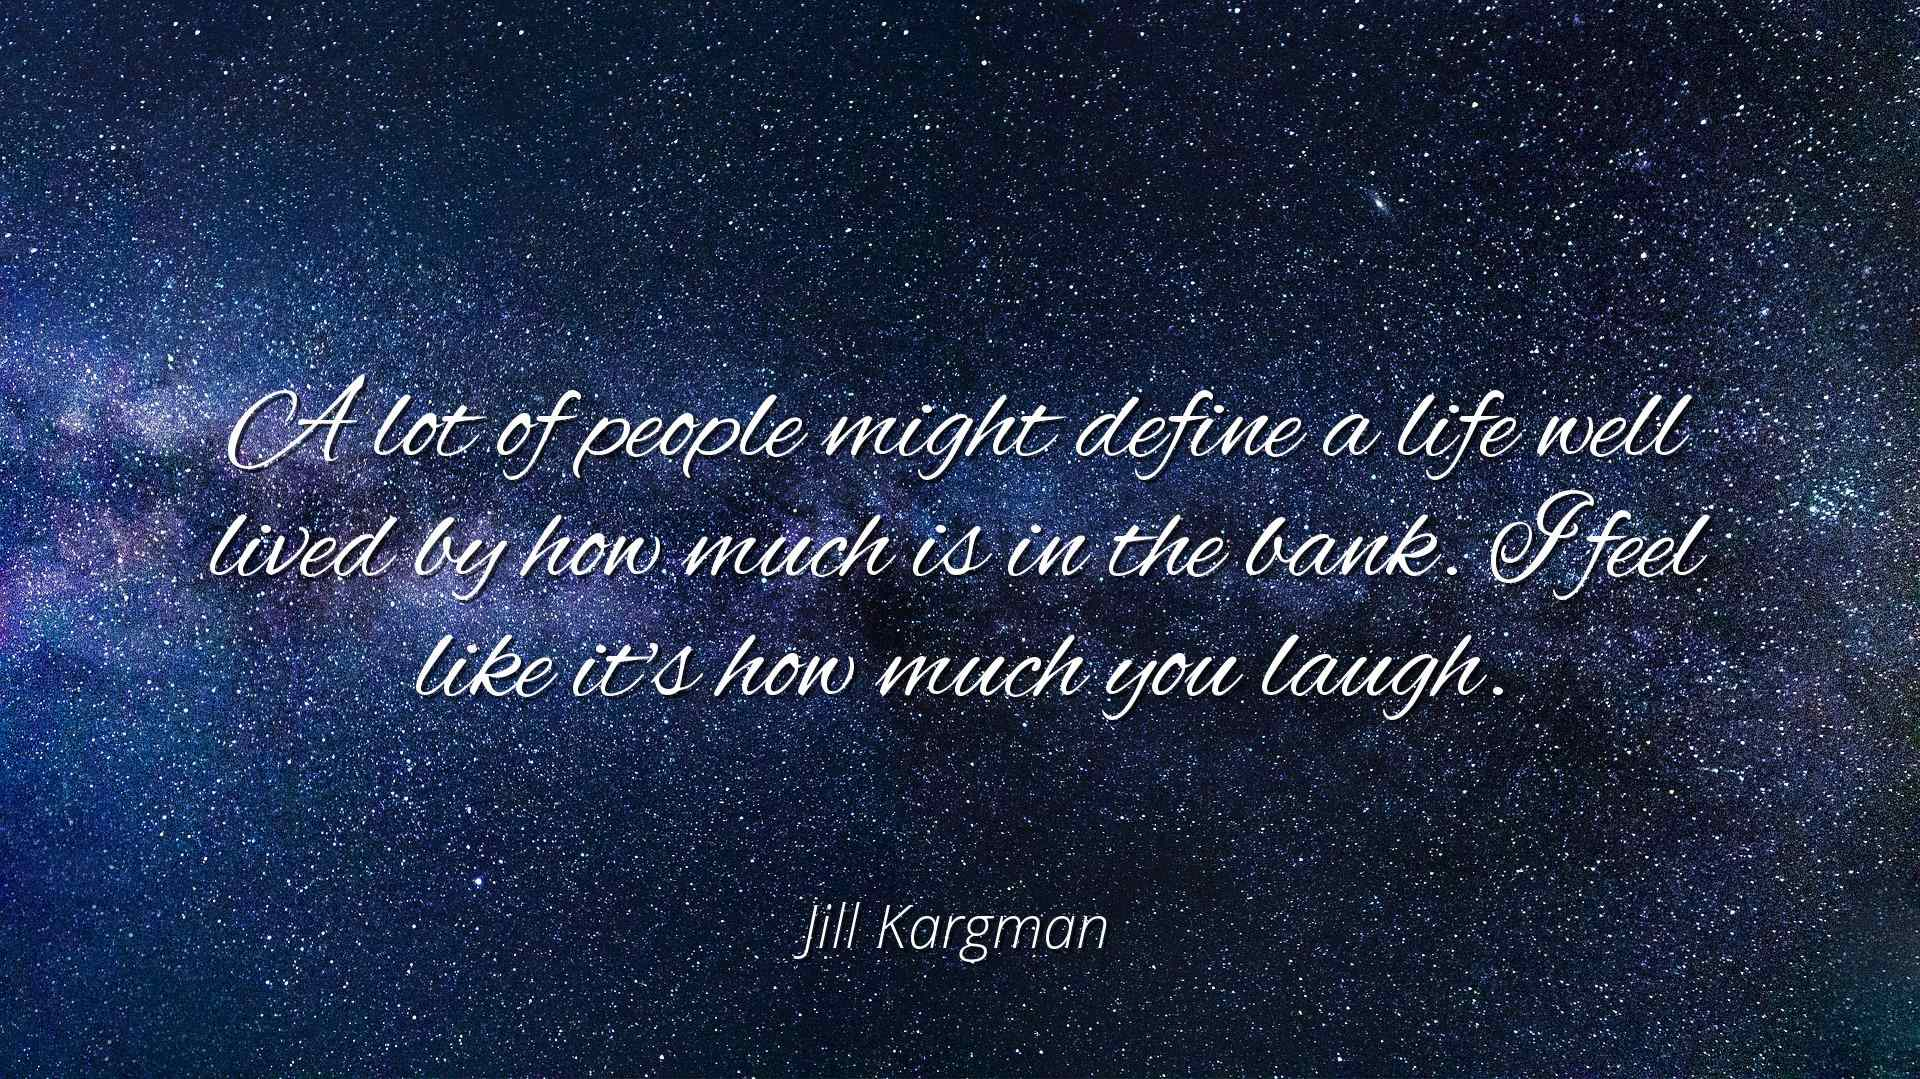 Jill Kargman A Lot Of People Might Define A Life Well Lived By How